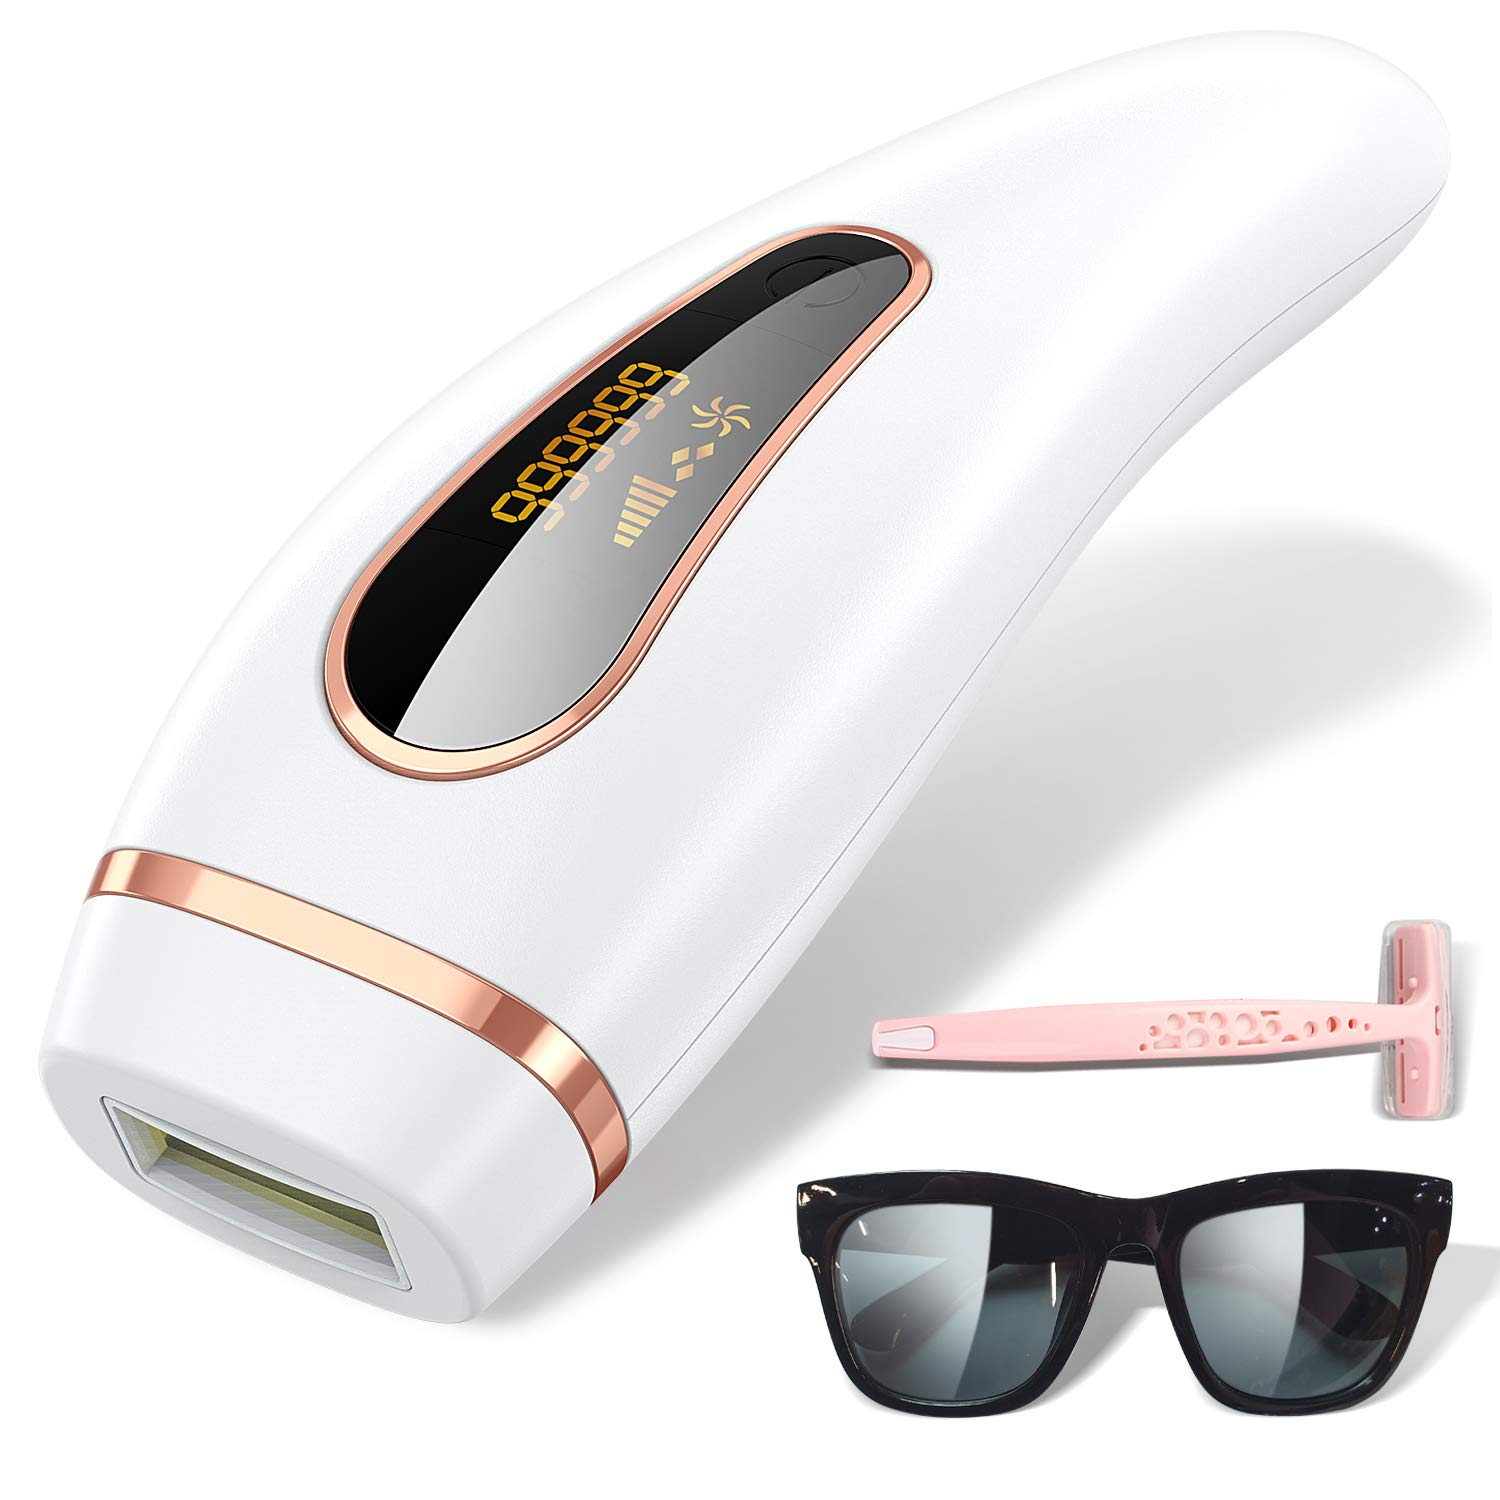 IPL Hair Removal, 999,999 Flashes Painless Hair Remover Device for Whole Body Professional Hair Remover Device At-Home for Female